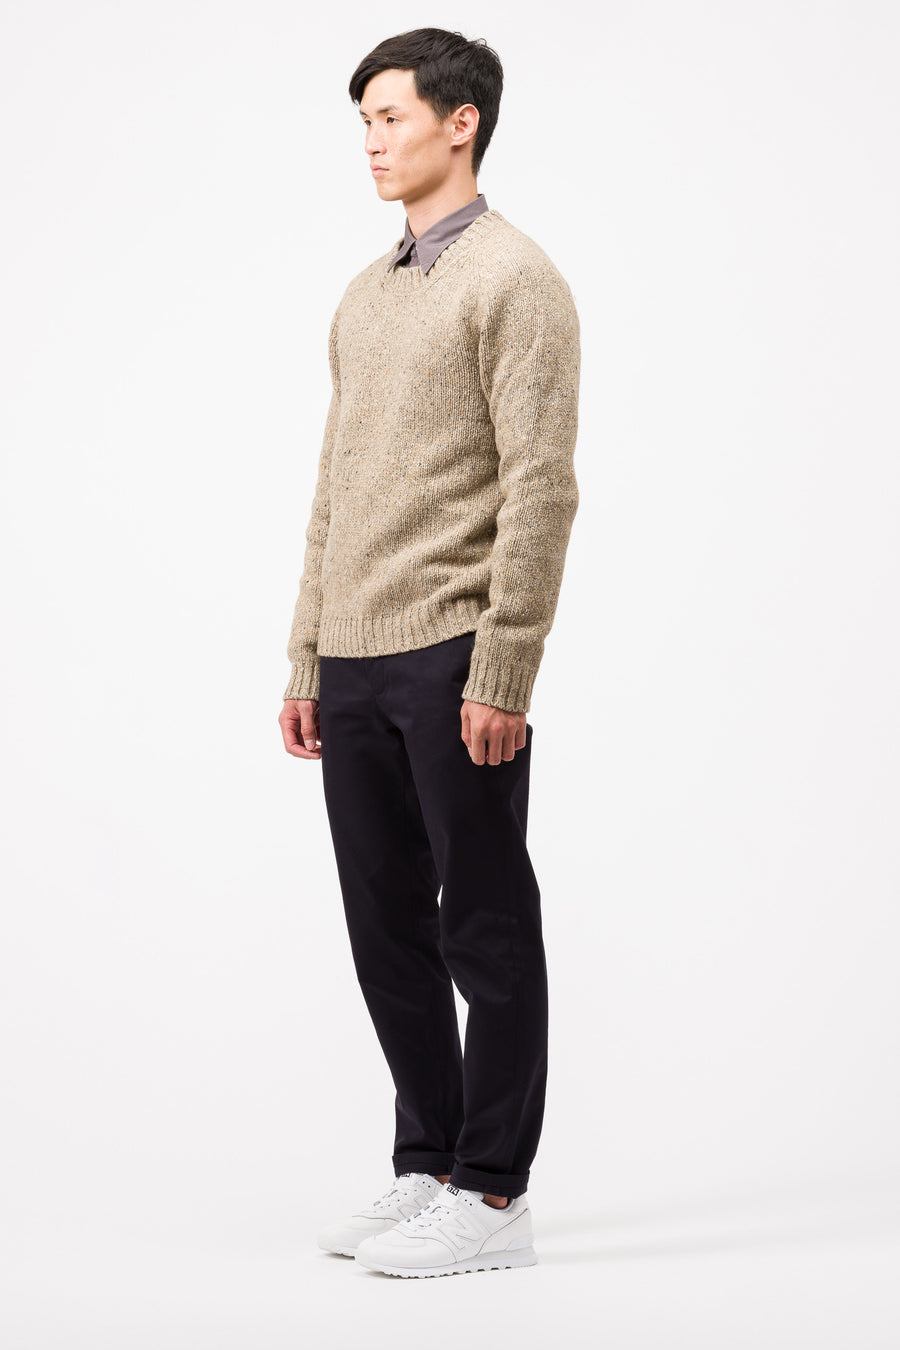 Maison Margiela Speckled Knit Sweater in Khaki/Brown - Notre